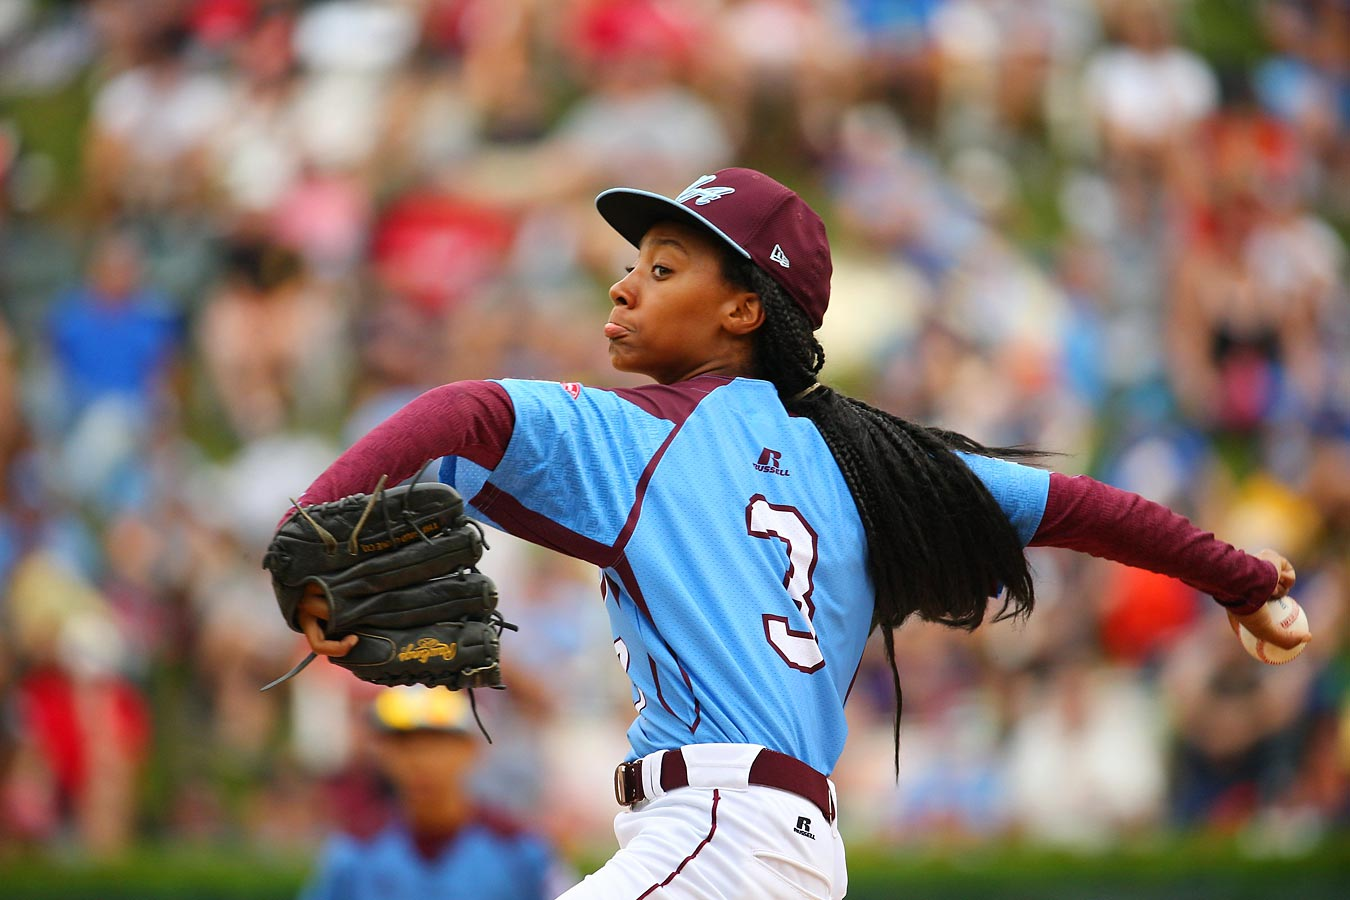 Little League star Mo'ne Davis throws a pitch against the Southeast Region team from Nashville.